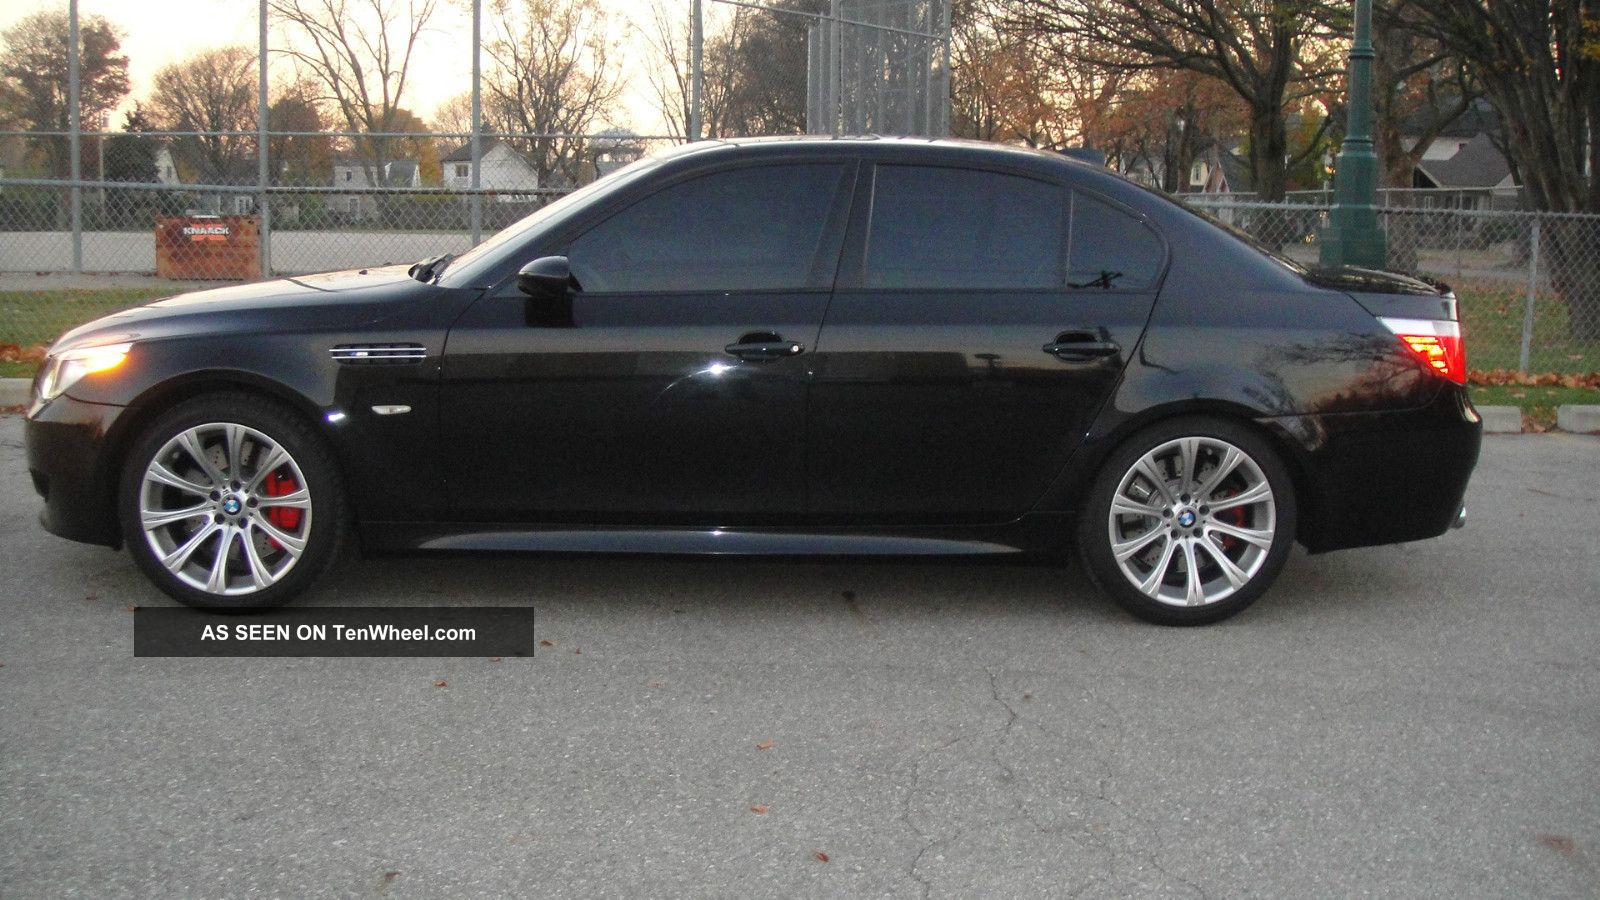 2007 Bmw M5 6 Speed Black / Black Every Option Available - 40k Mi - Tires 08 M5 photo